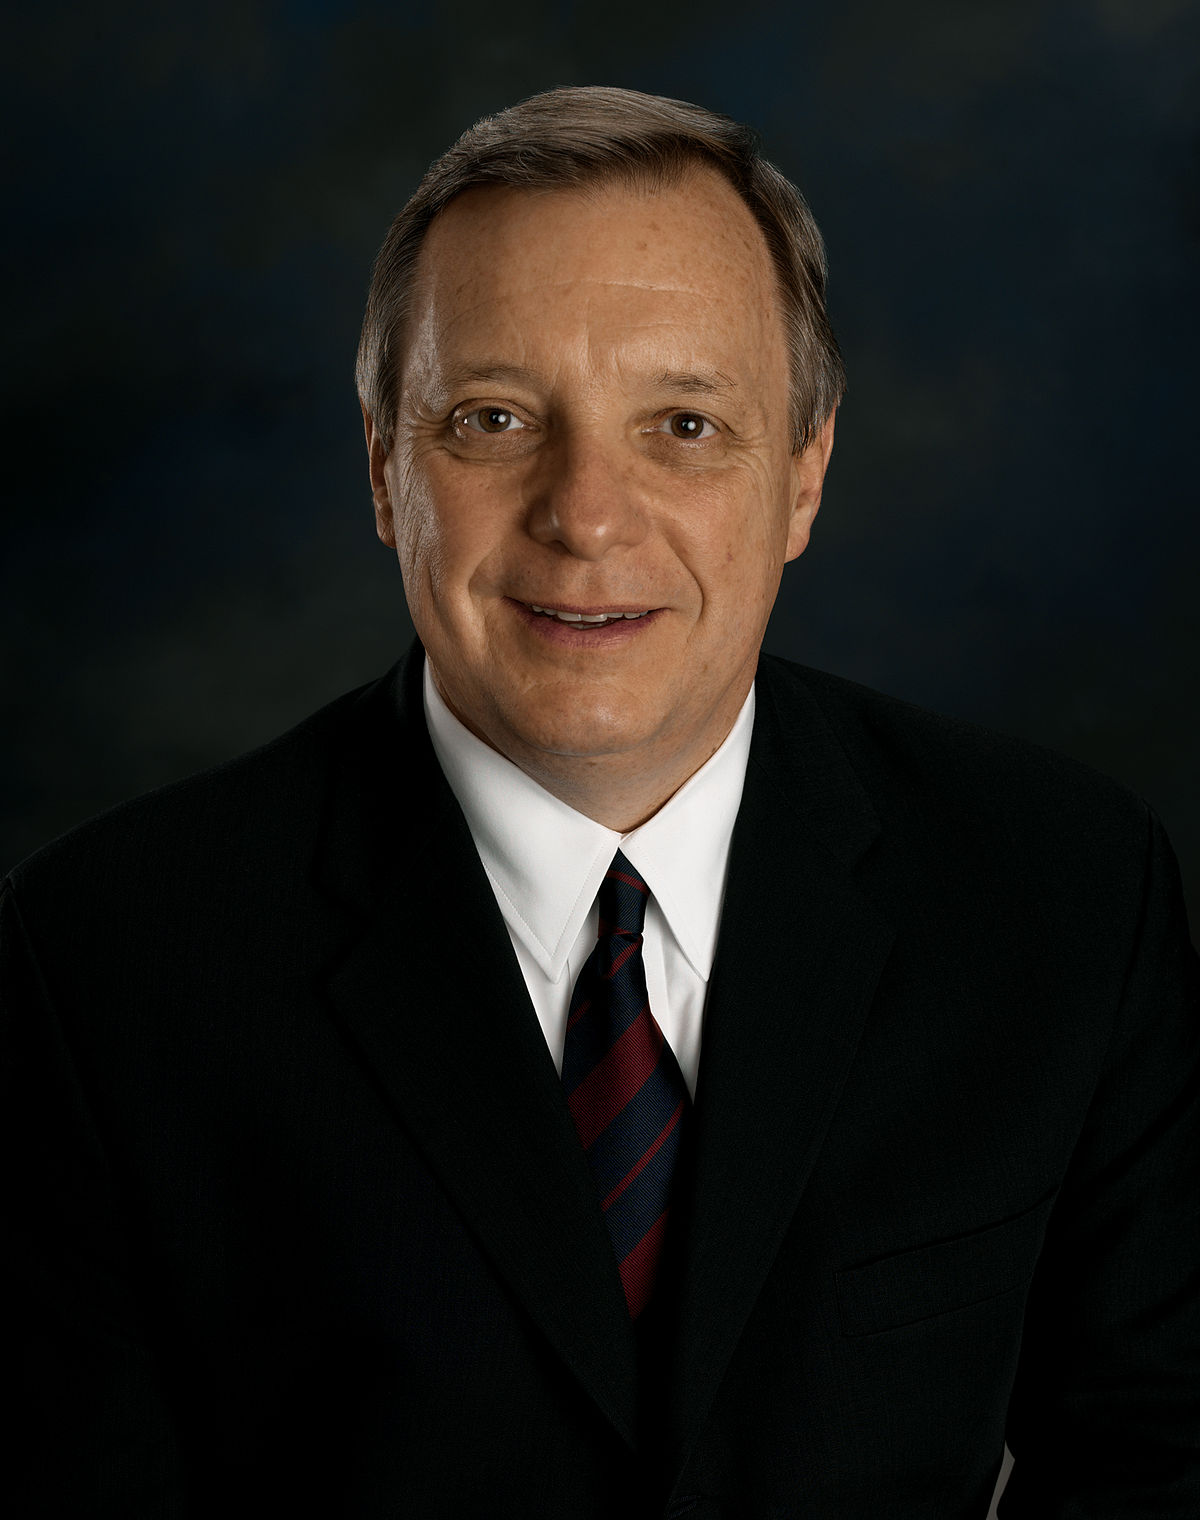 Dick Durbin Phone Number, Email, Fan Mail, Address, Biography, Agent, Manager, Mailing address, Contact Info, Mailing Addresses